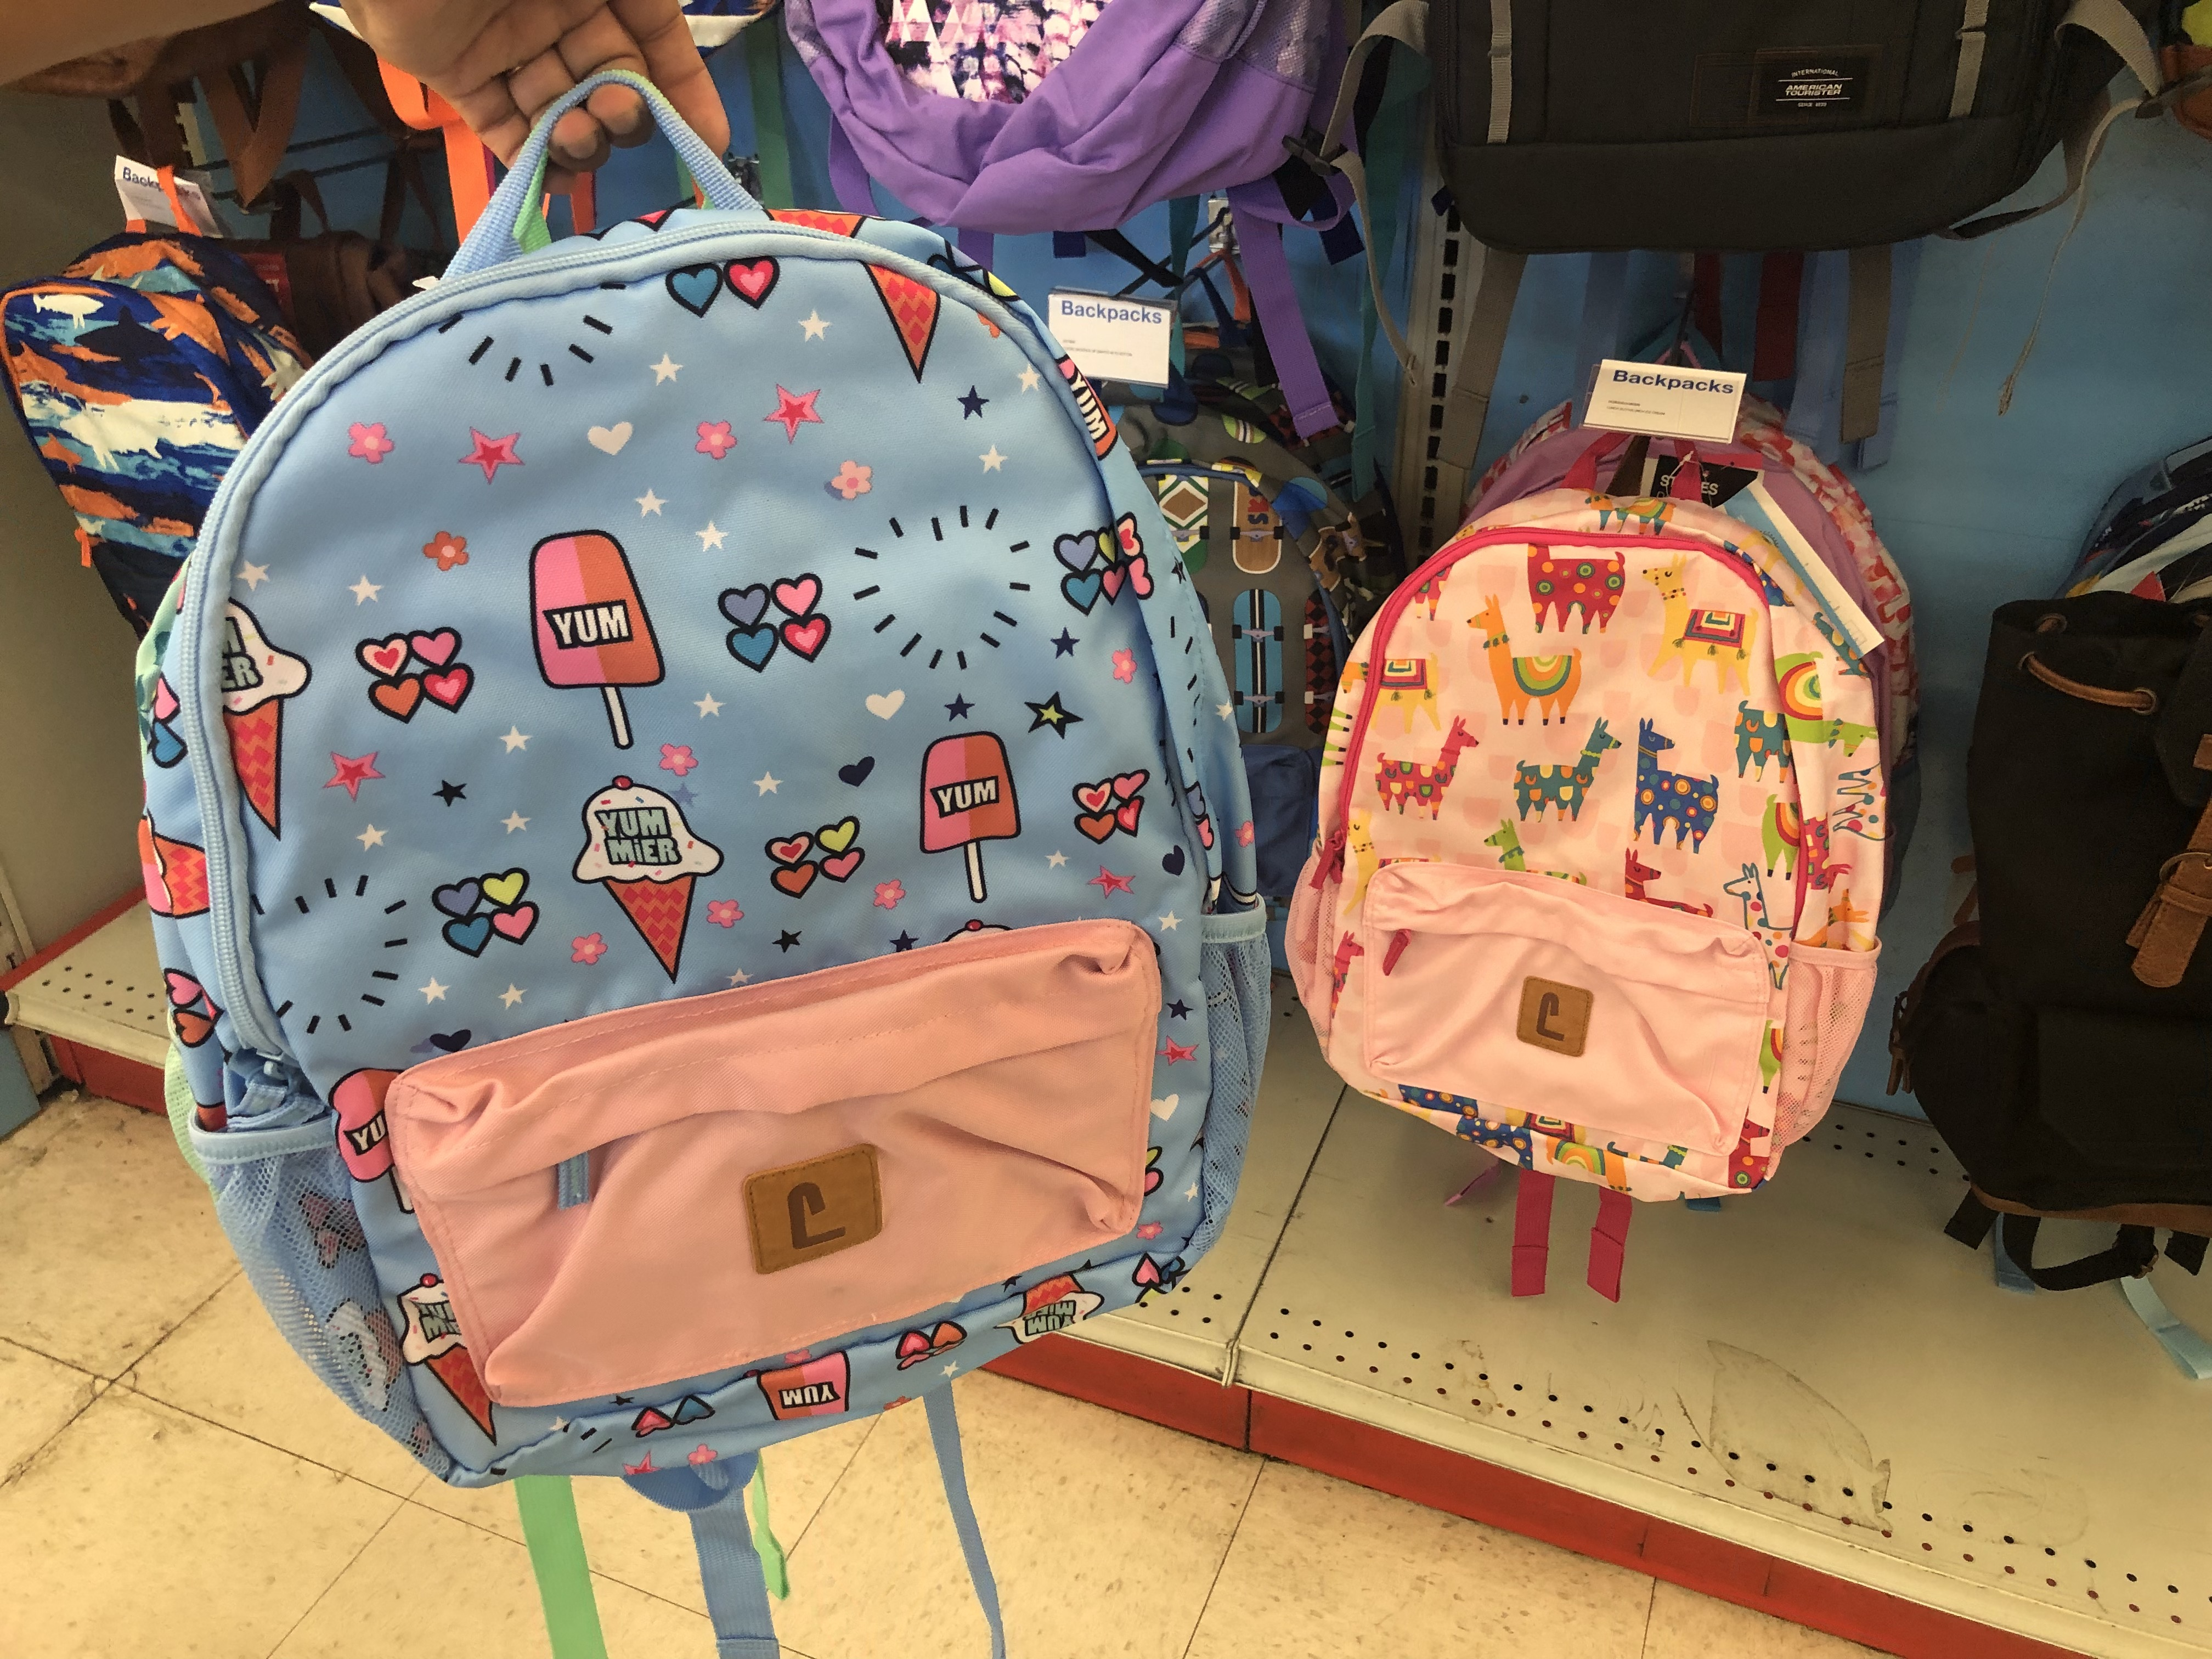 back to school deals at staples, target, and walmart - staples backpacks